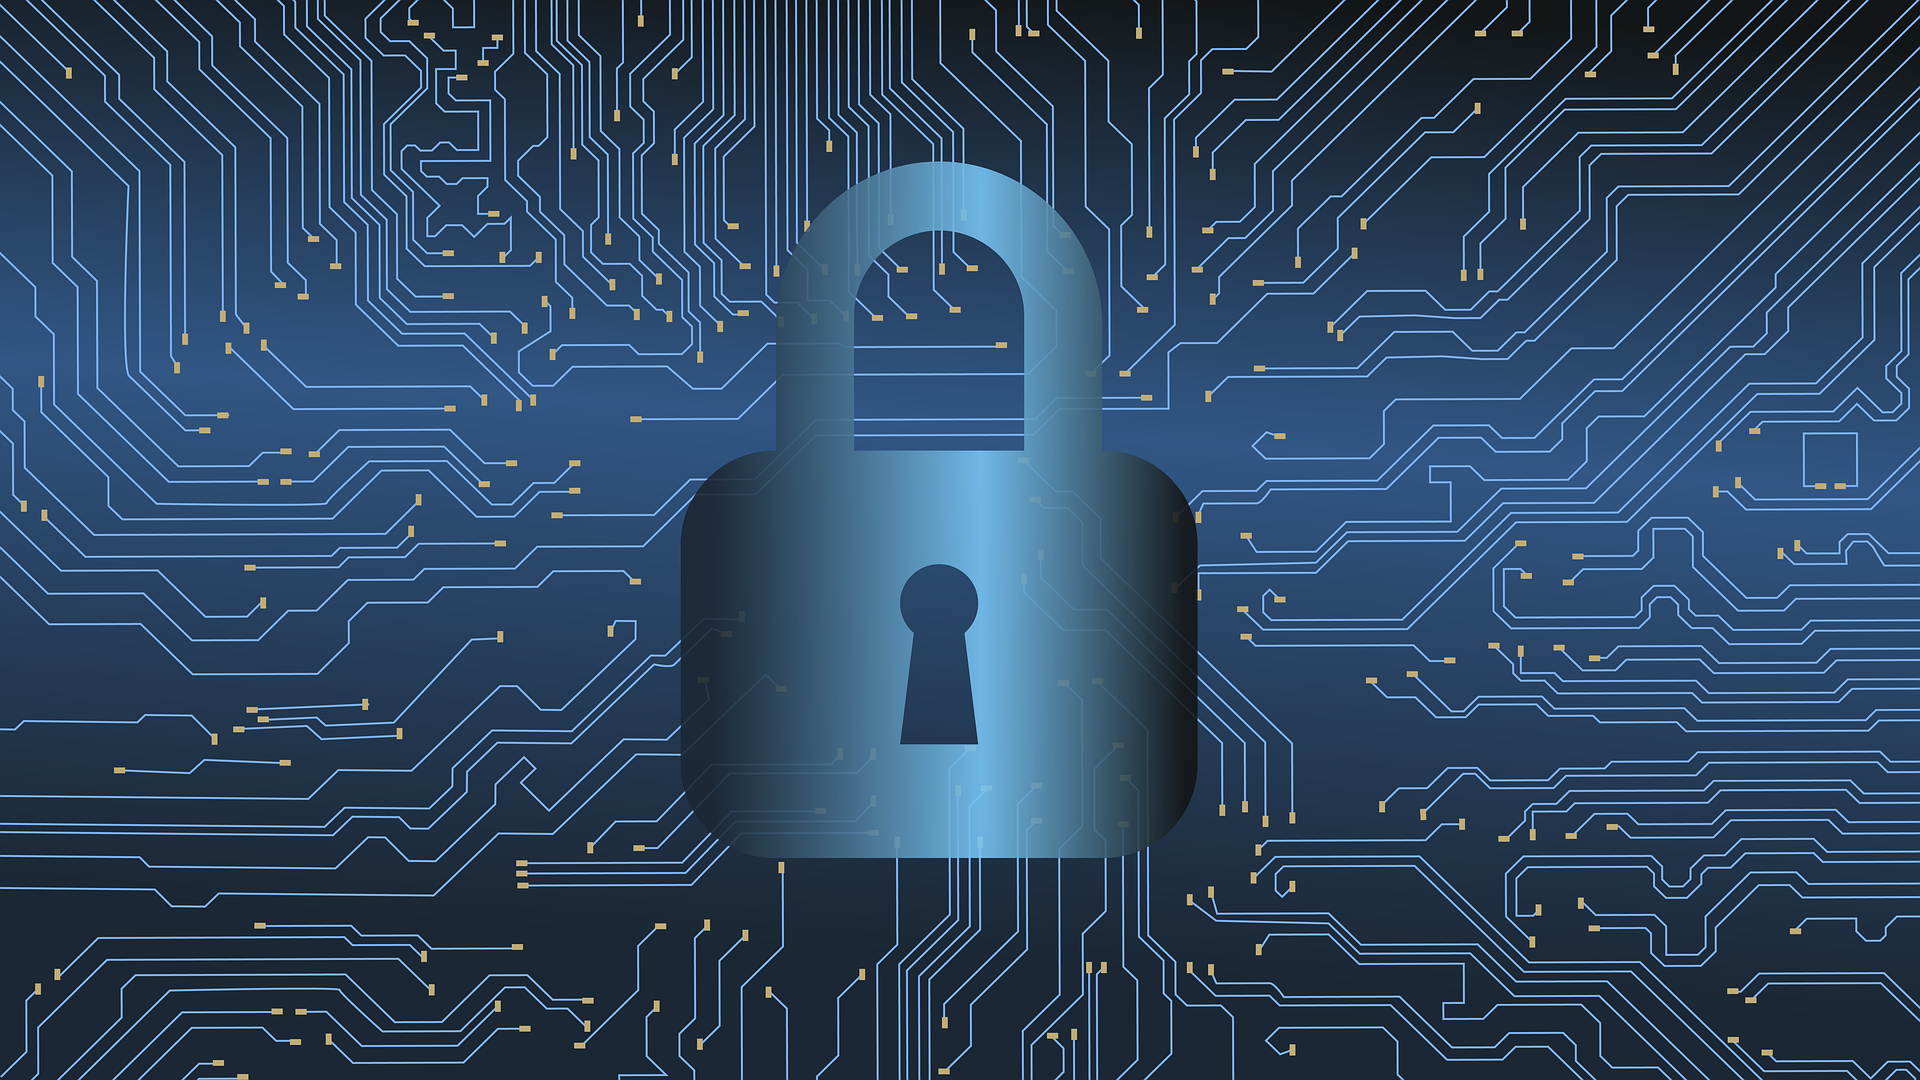 The Cybersecurity Tech Accord supports the GFCE's call for